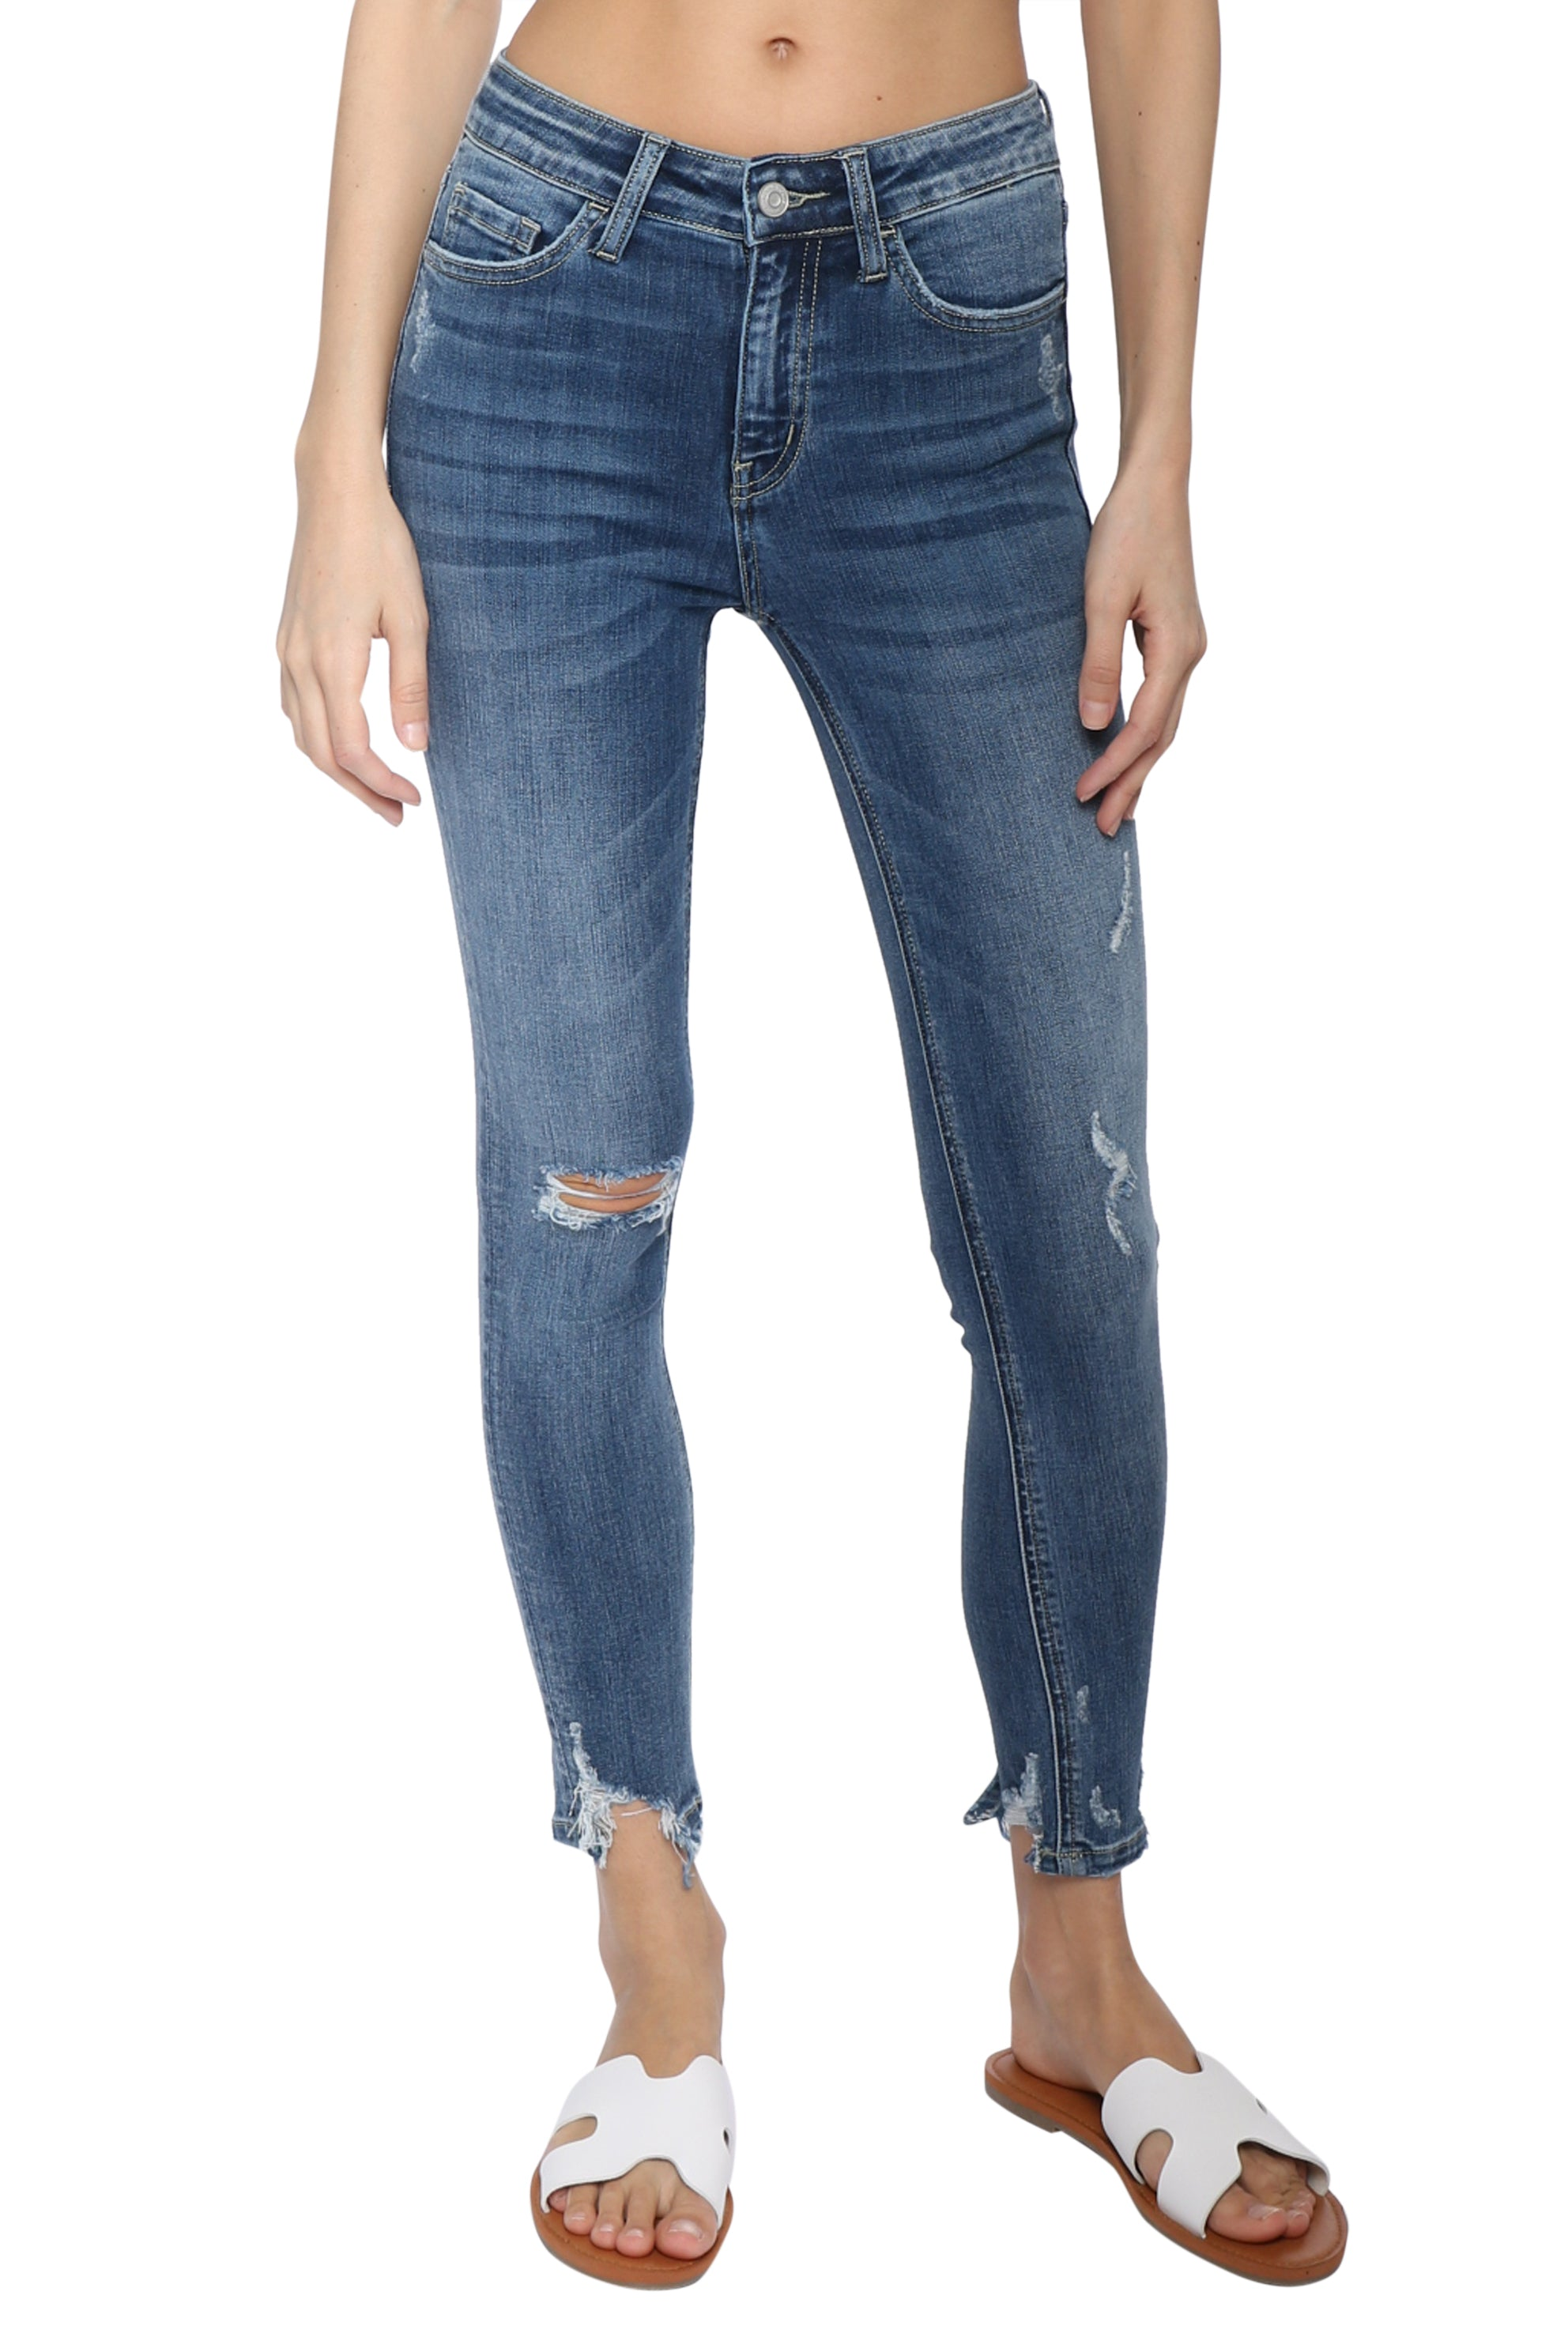 965b7720b75 Flying Monkey High Rise Crop Skinny Jeans